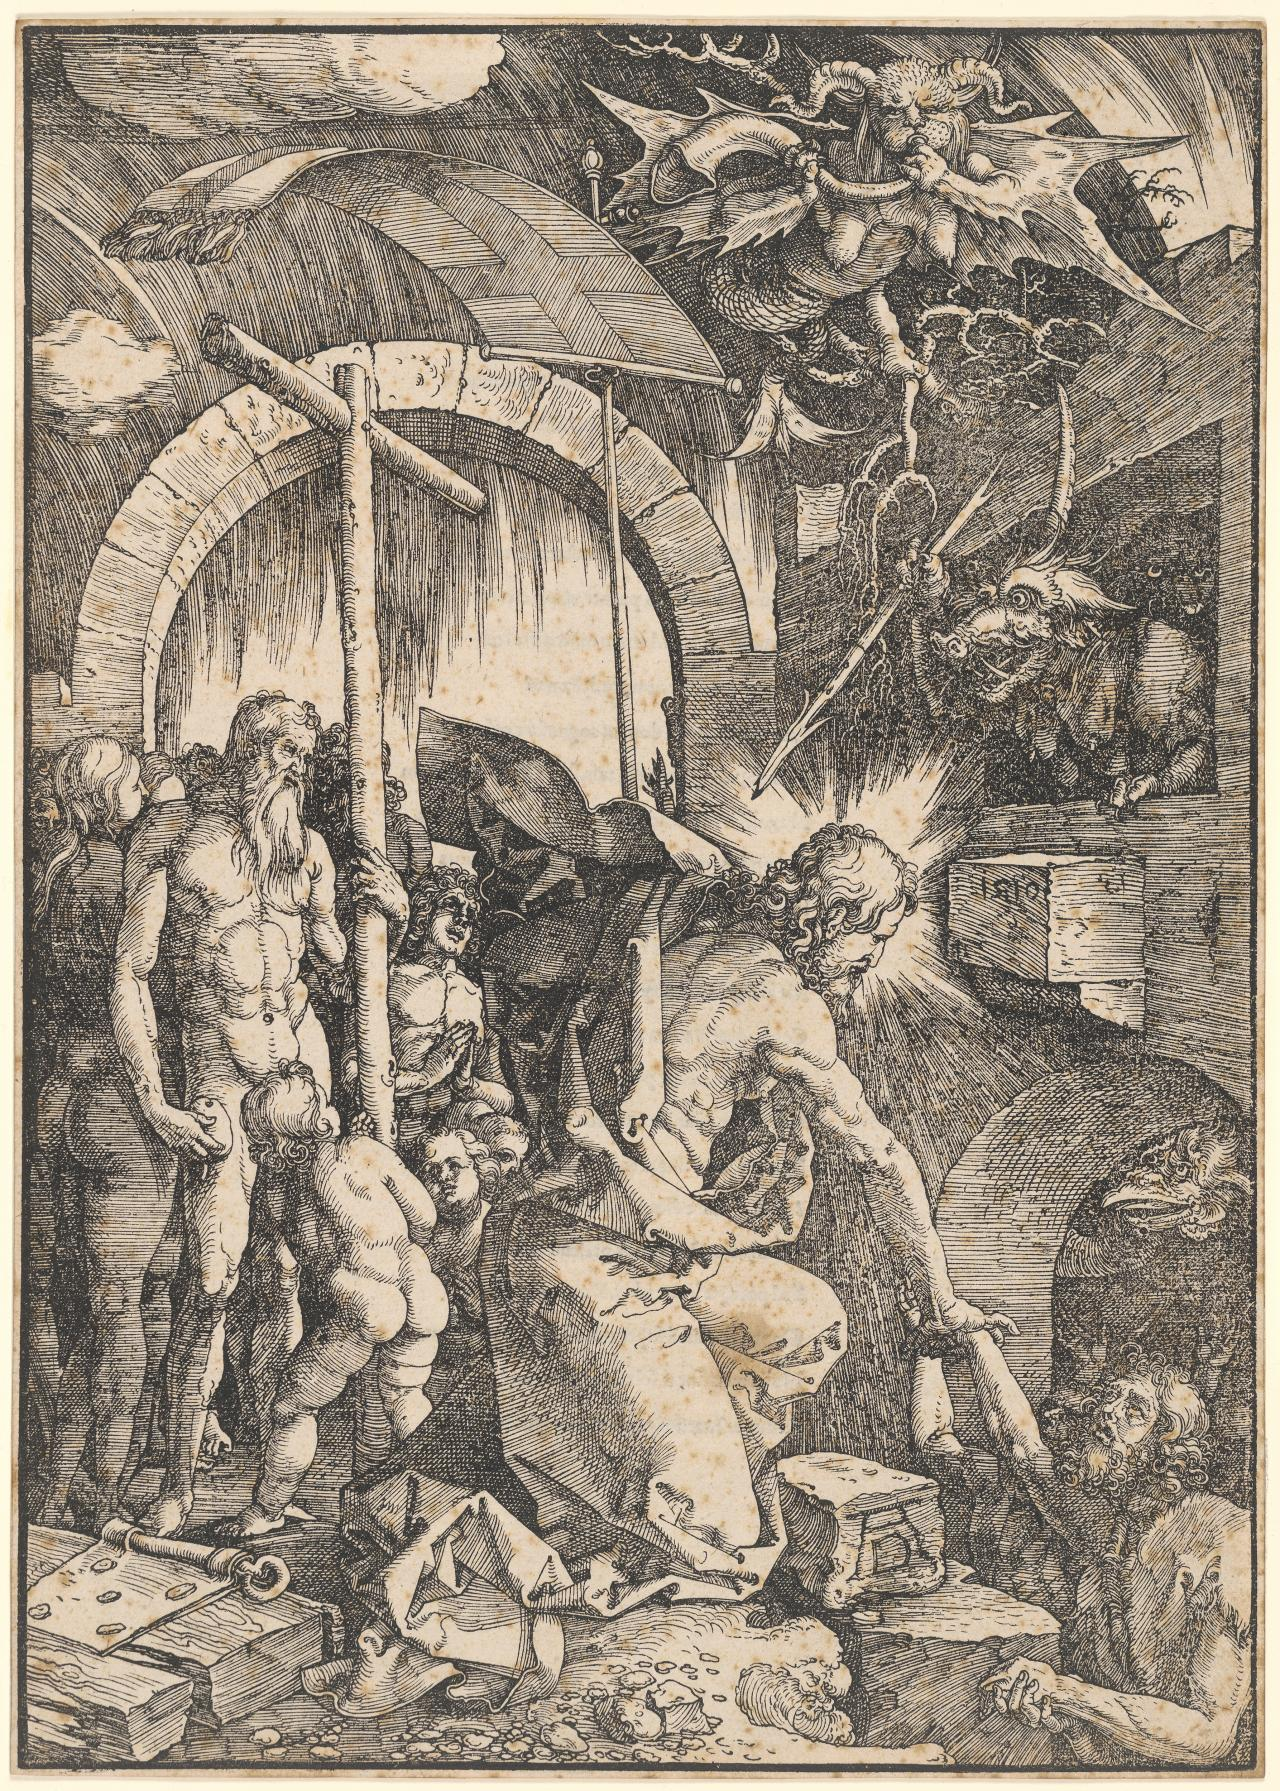 The Harrowing of Hell (Christ in Limbo)